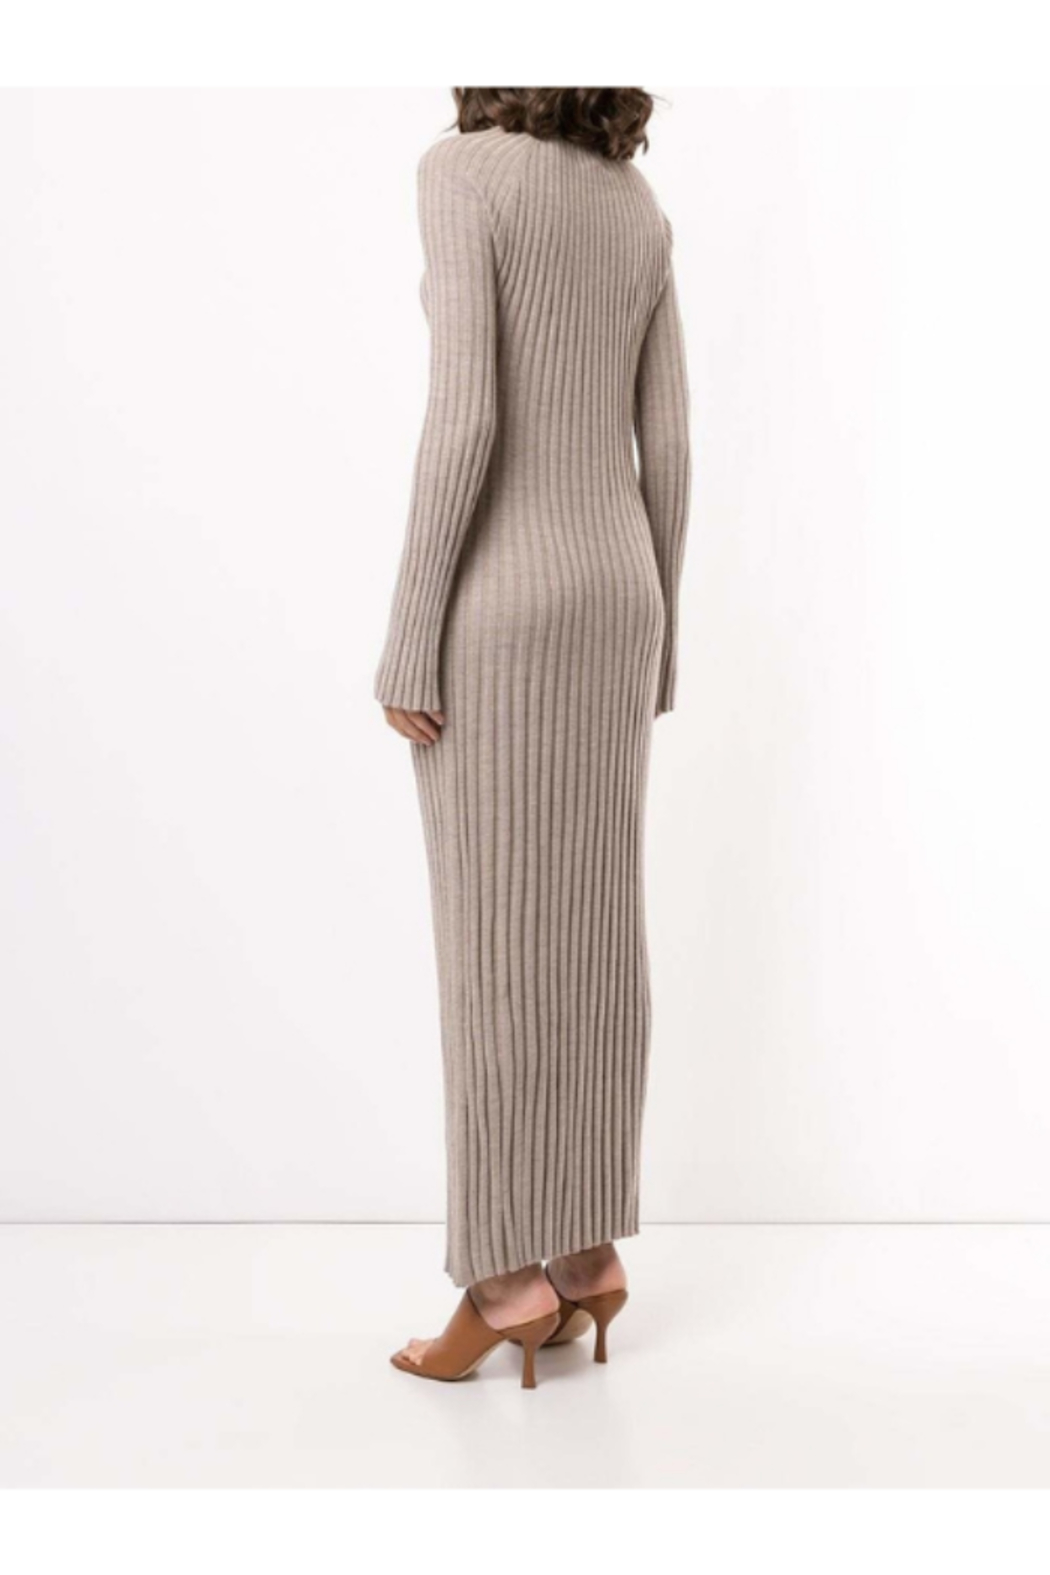 LouLou Studio Long Sleeve Maxi Pleated Knit Dress - Side Cropped Image